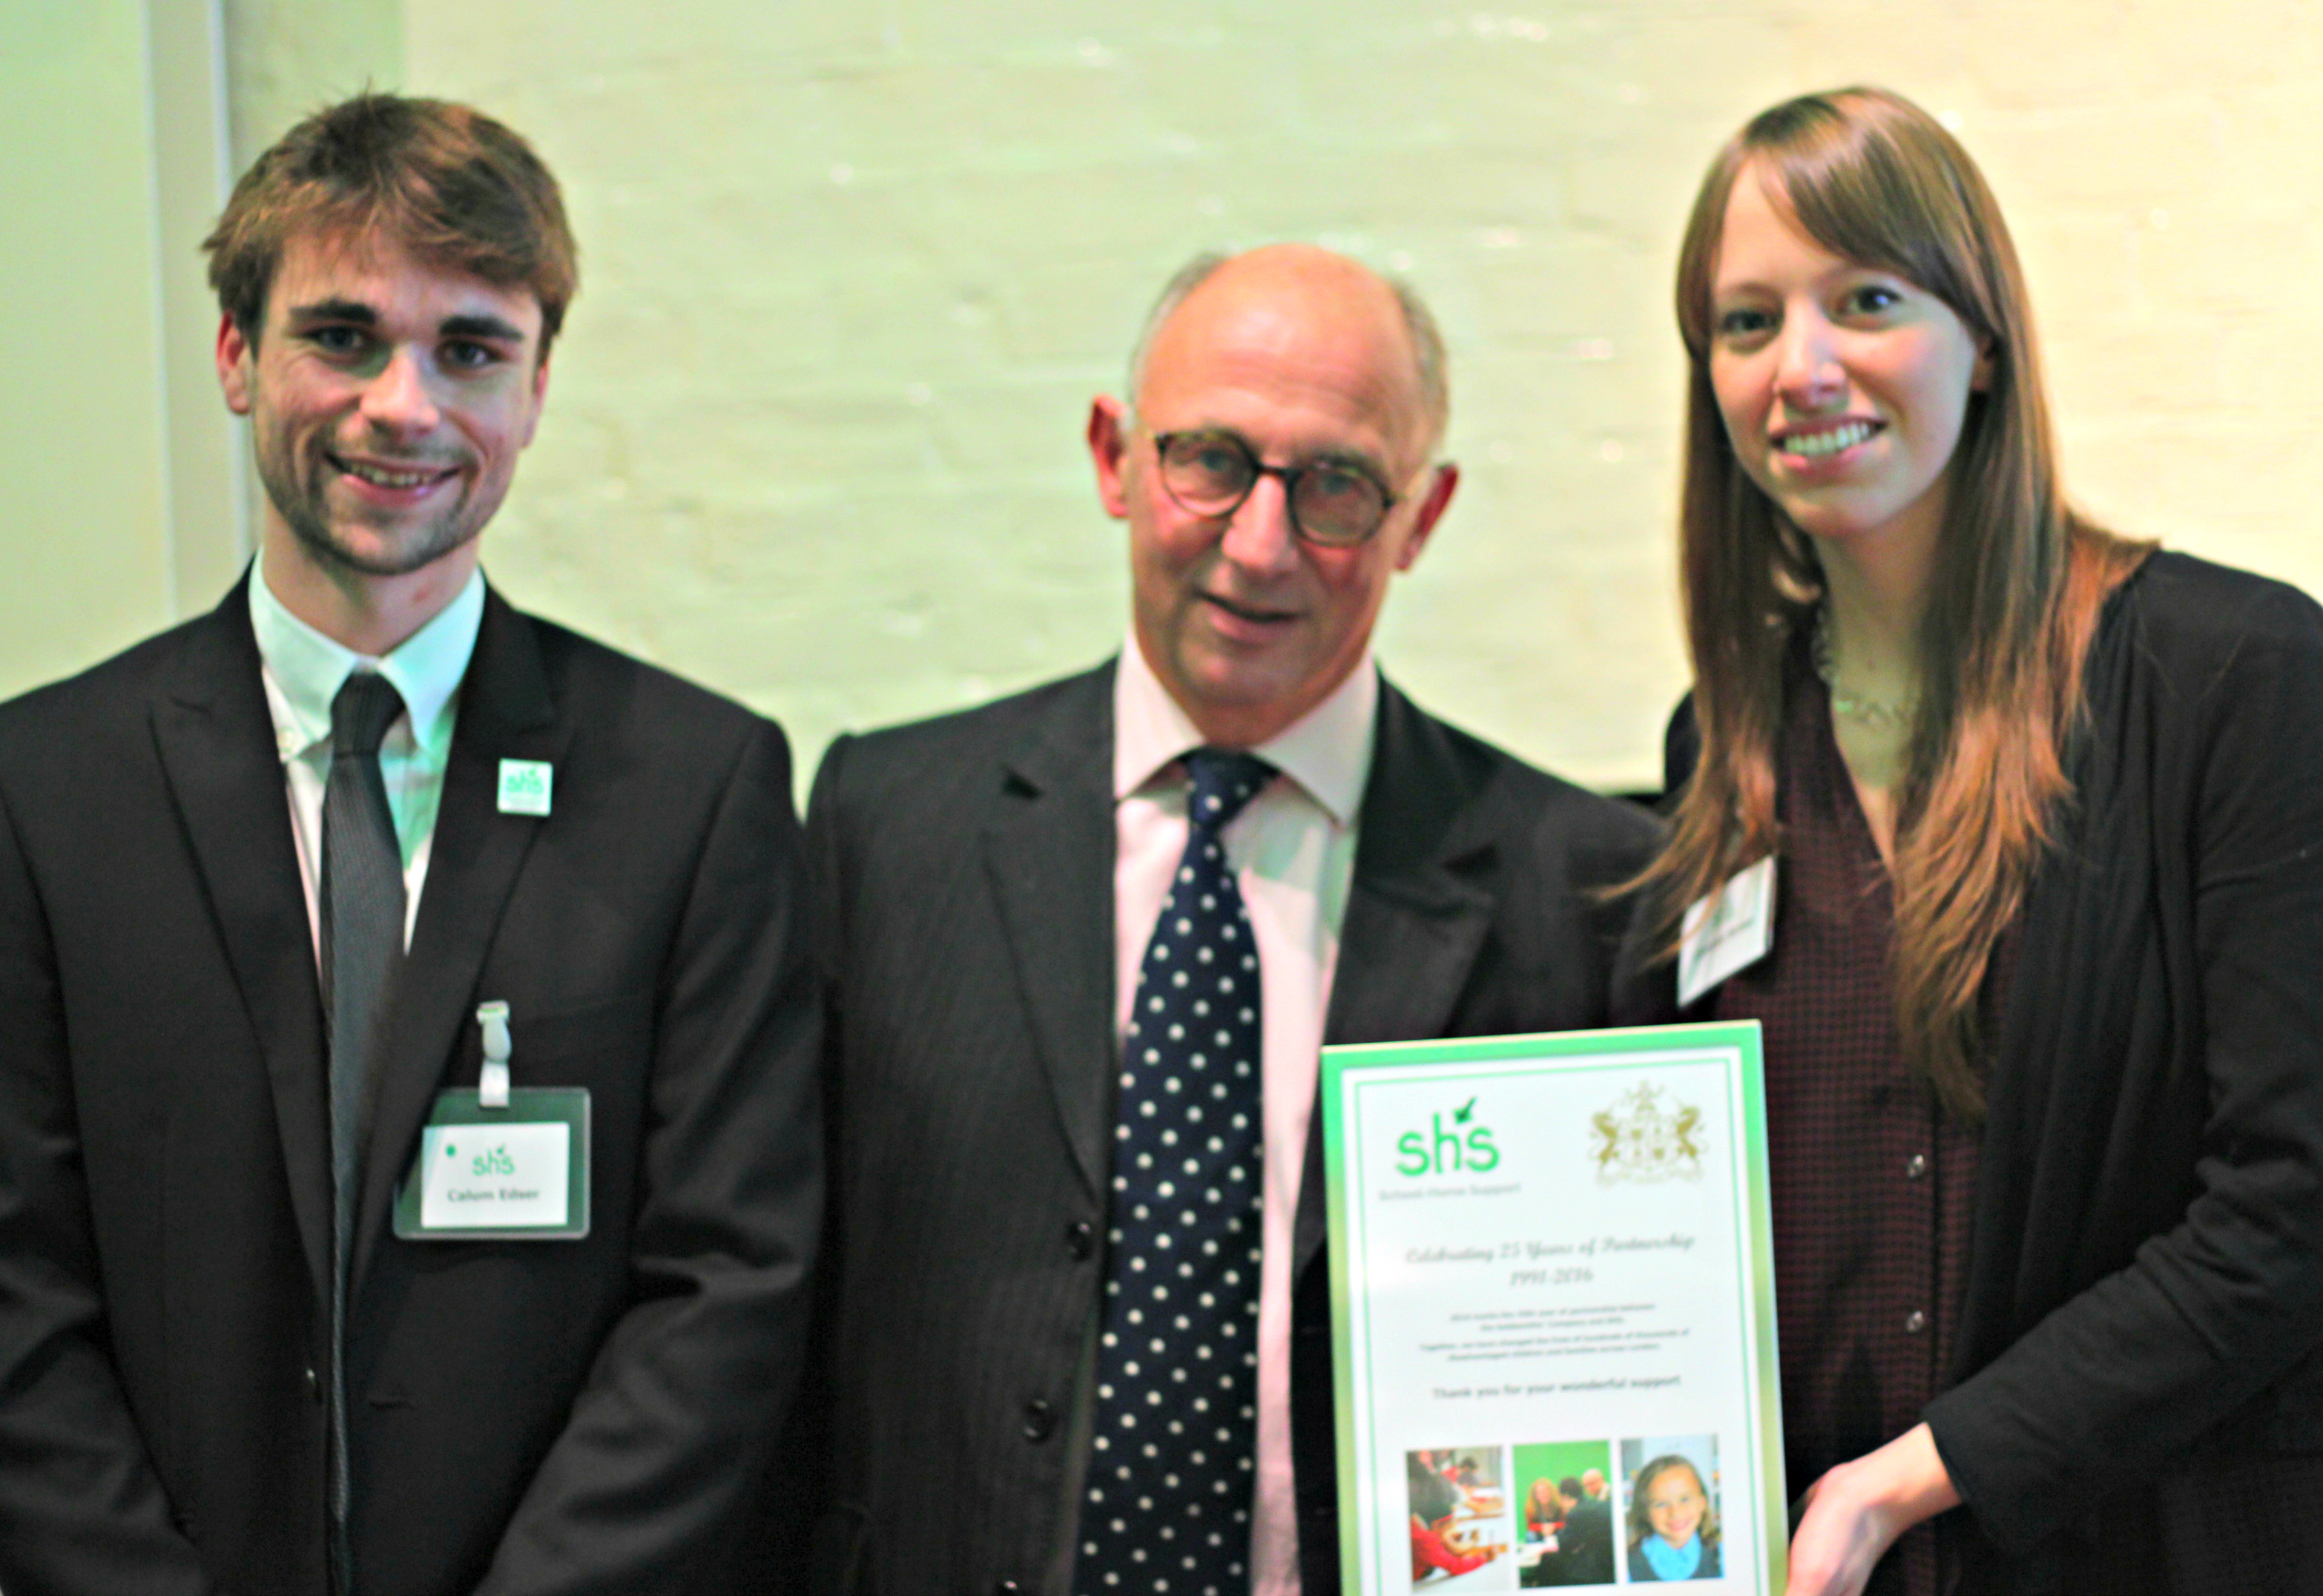 The Goldsmiths Company receive a certificate for supporting School-Home Support for 25 years